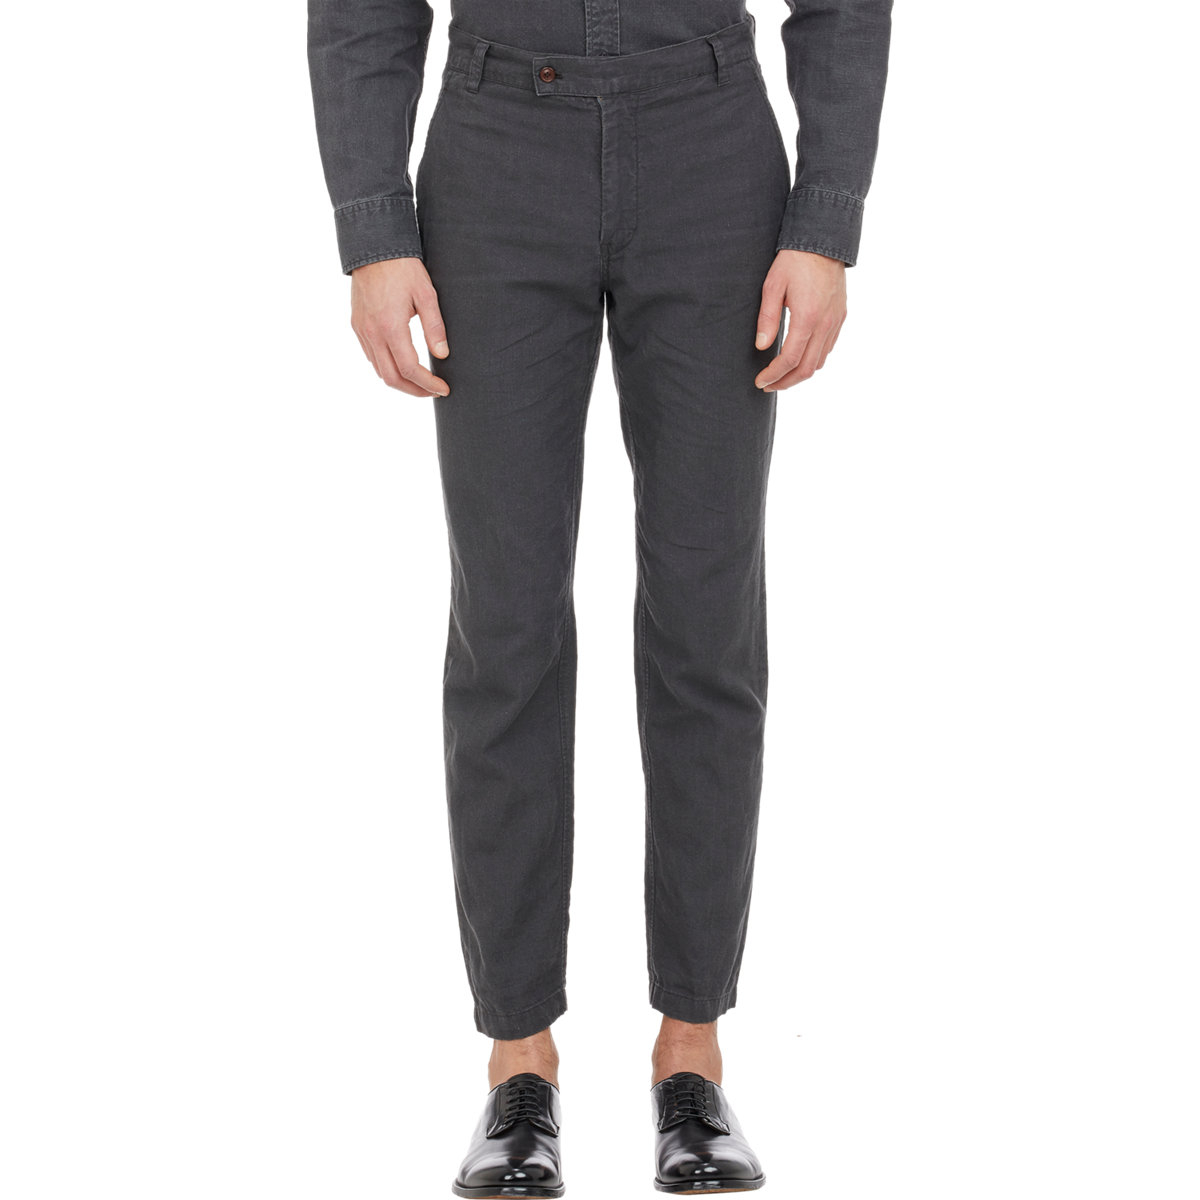 14706b788515a3 brooklyn-tailors-black-linen-cotton-trousers-product-4-953095518-normal.jpeg